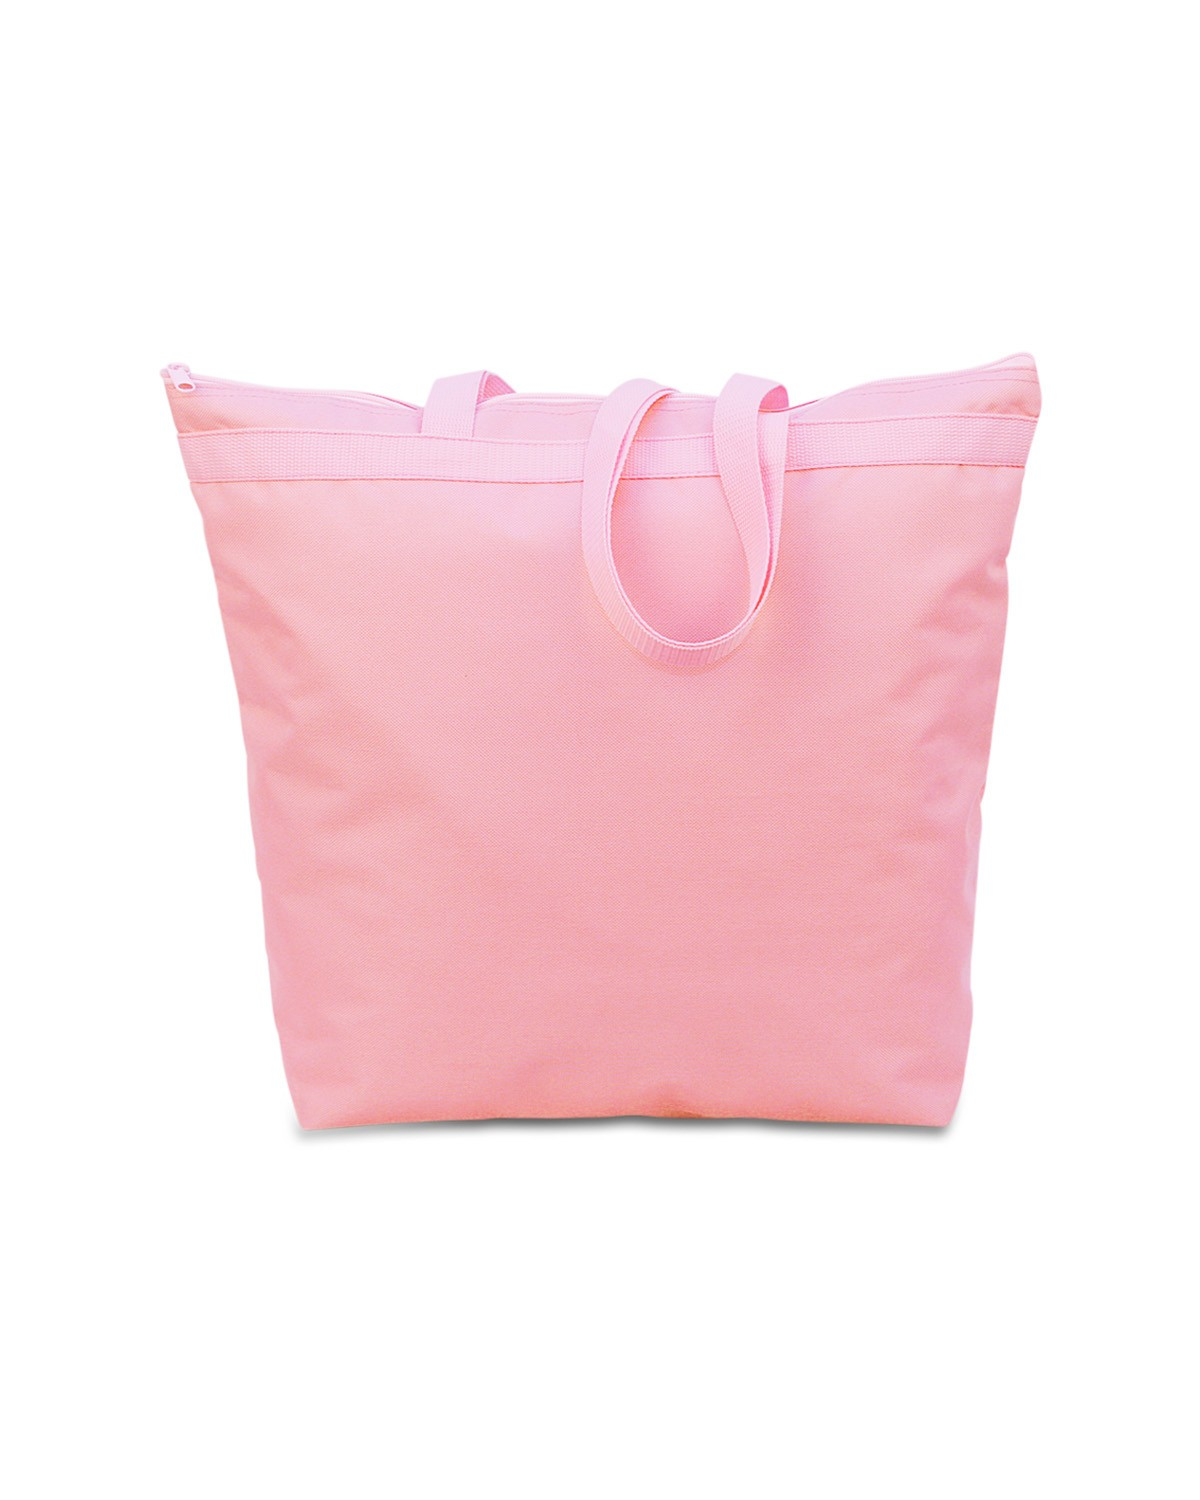 8802 Liberty Bags LIGHT PINK